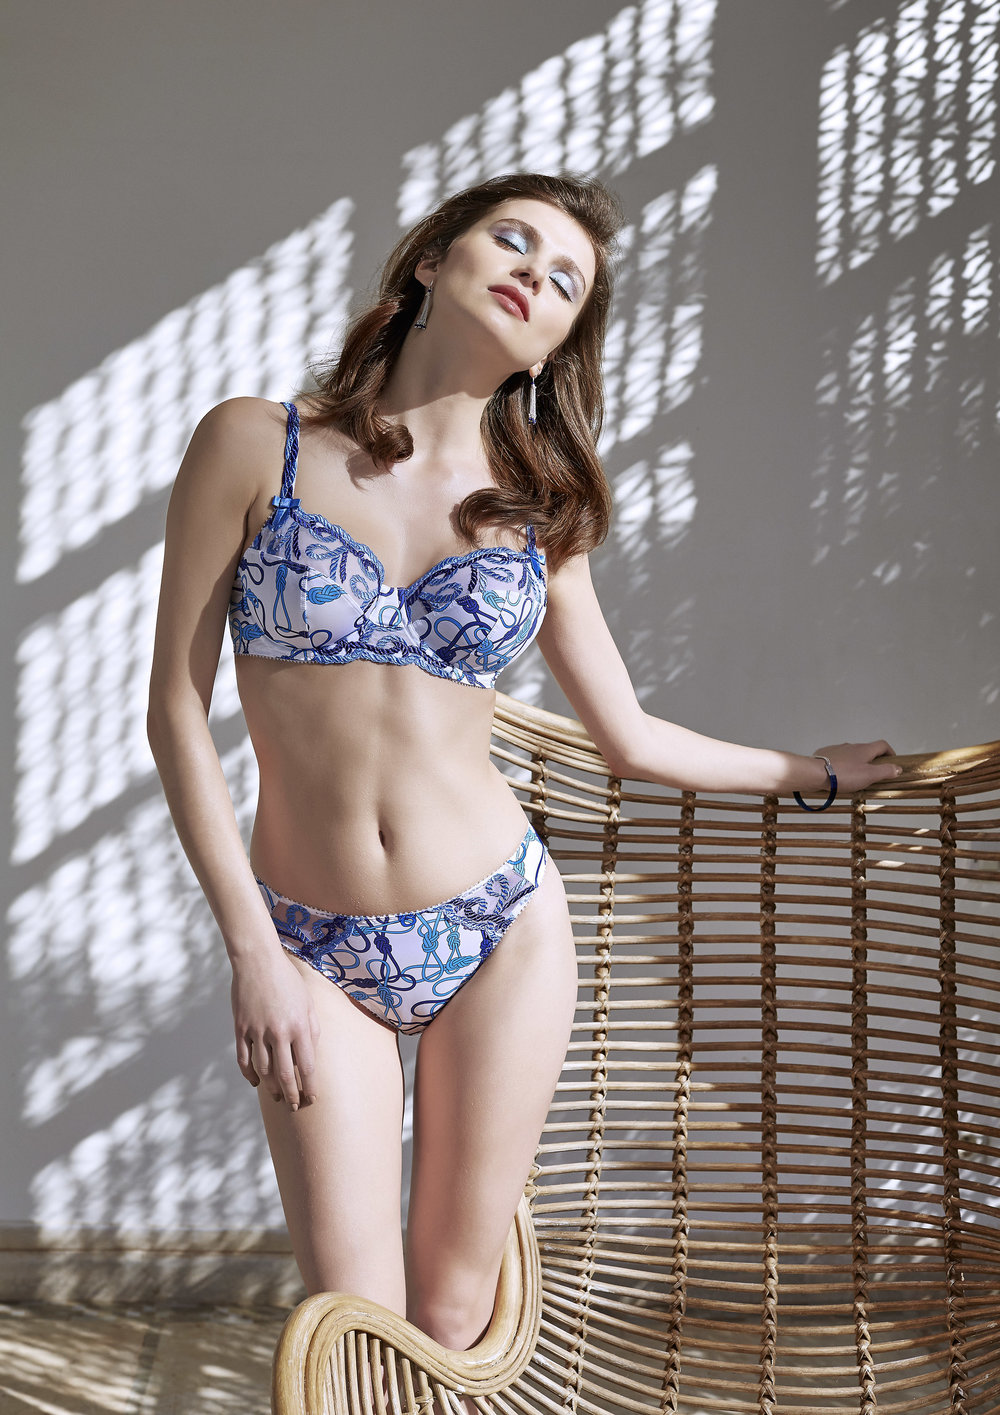 Fuller-figure balconnet, sizes 100 c; 85 to 100 d, e, f : $84 Slip, sizes 38 to 46: $50